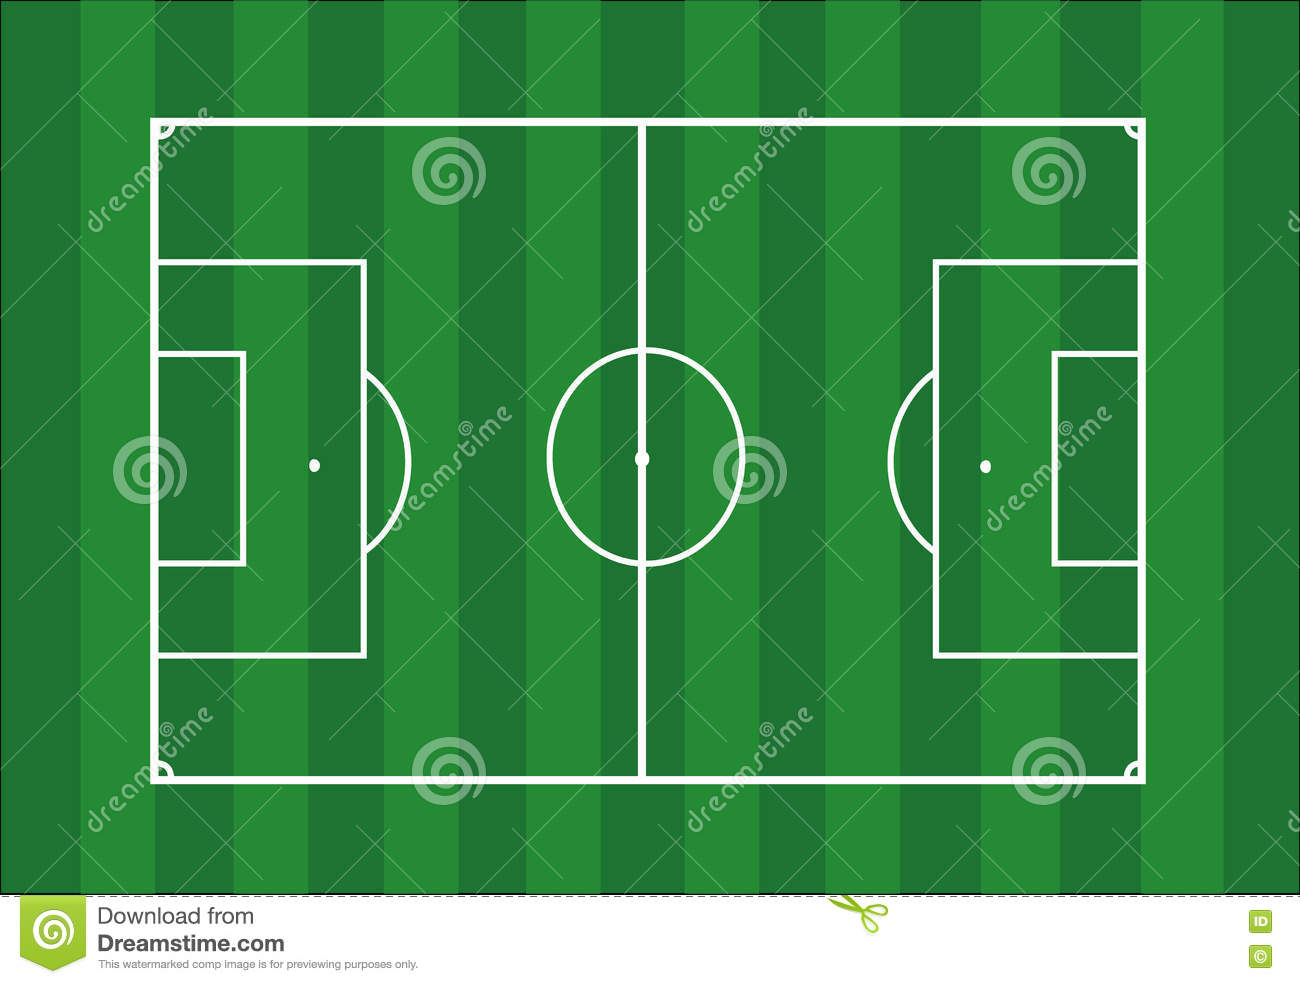 Soccer field football pitch stock vector illustration of lines download comp ccuart Image collections